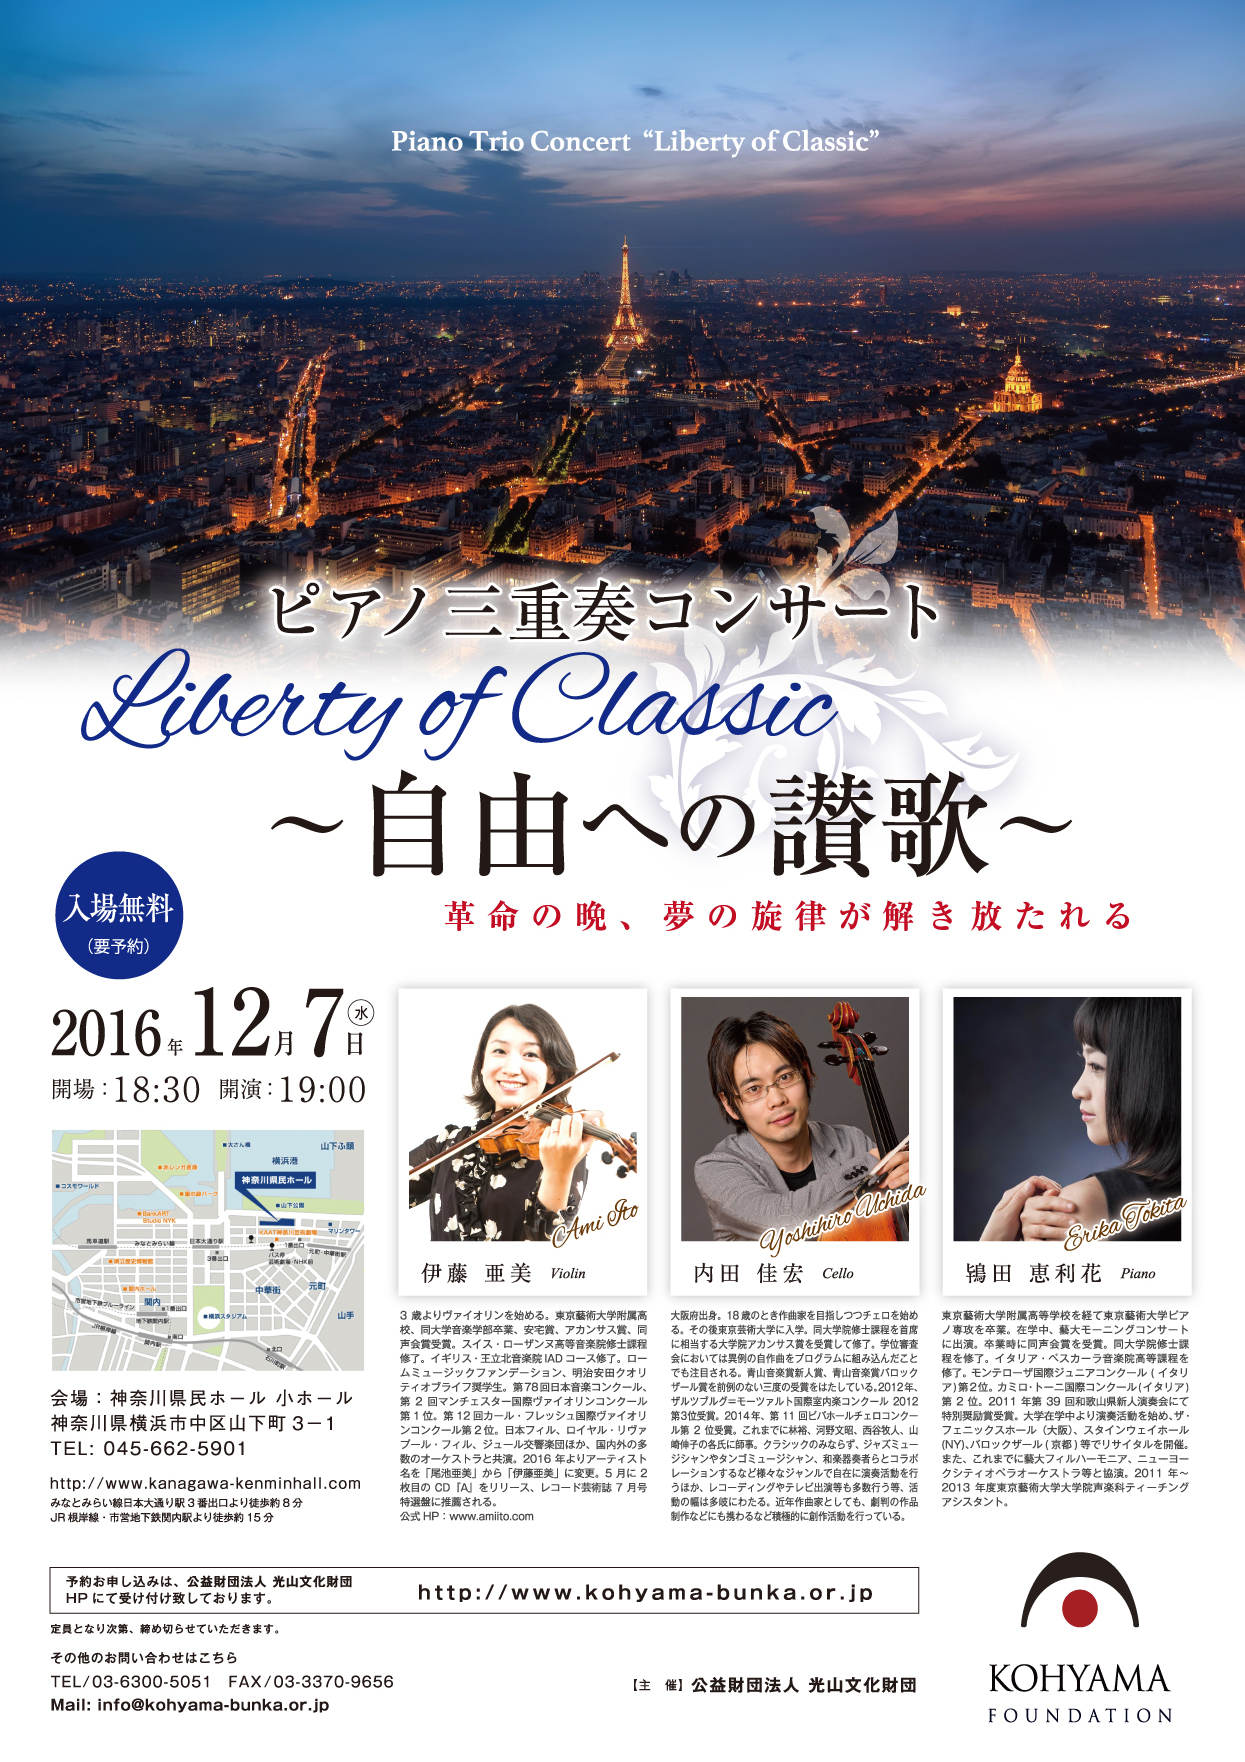 Liberty of Classic ~自由への讃歌~